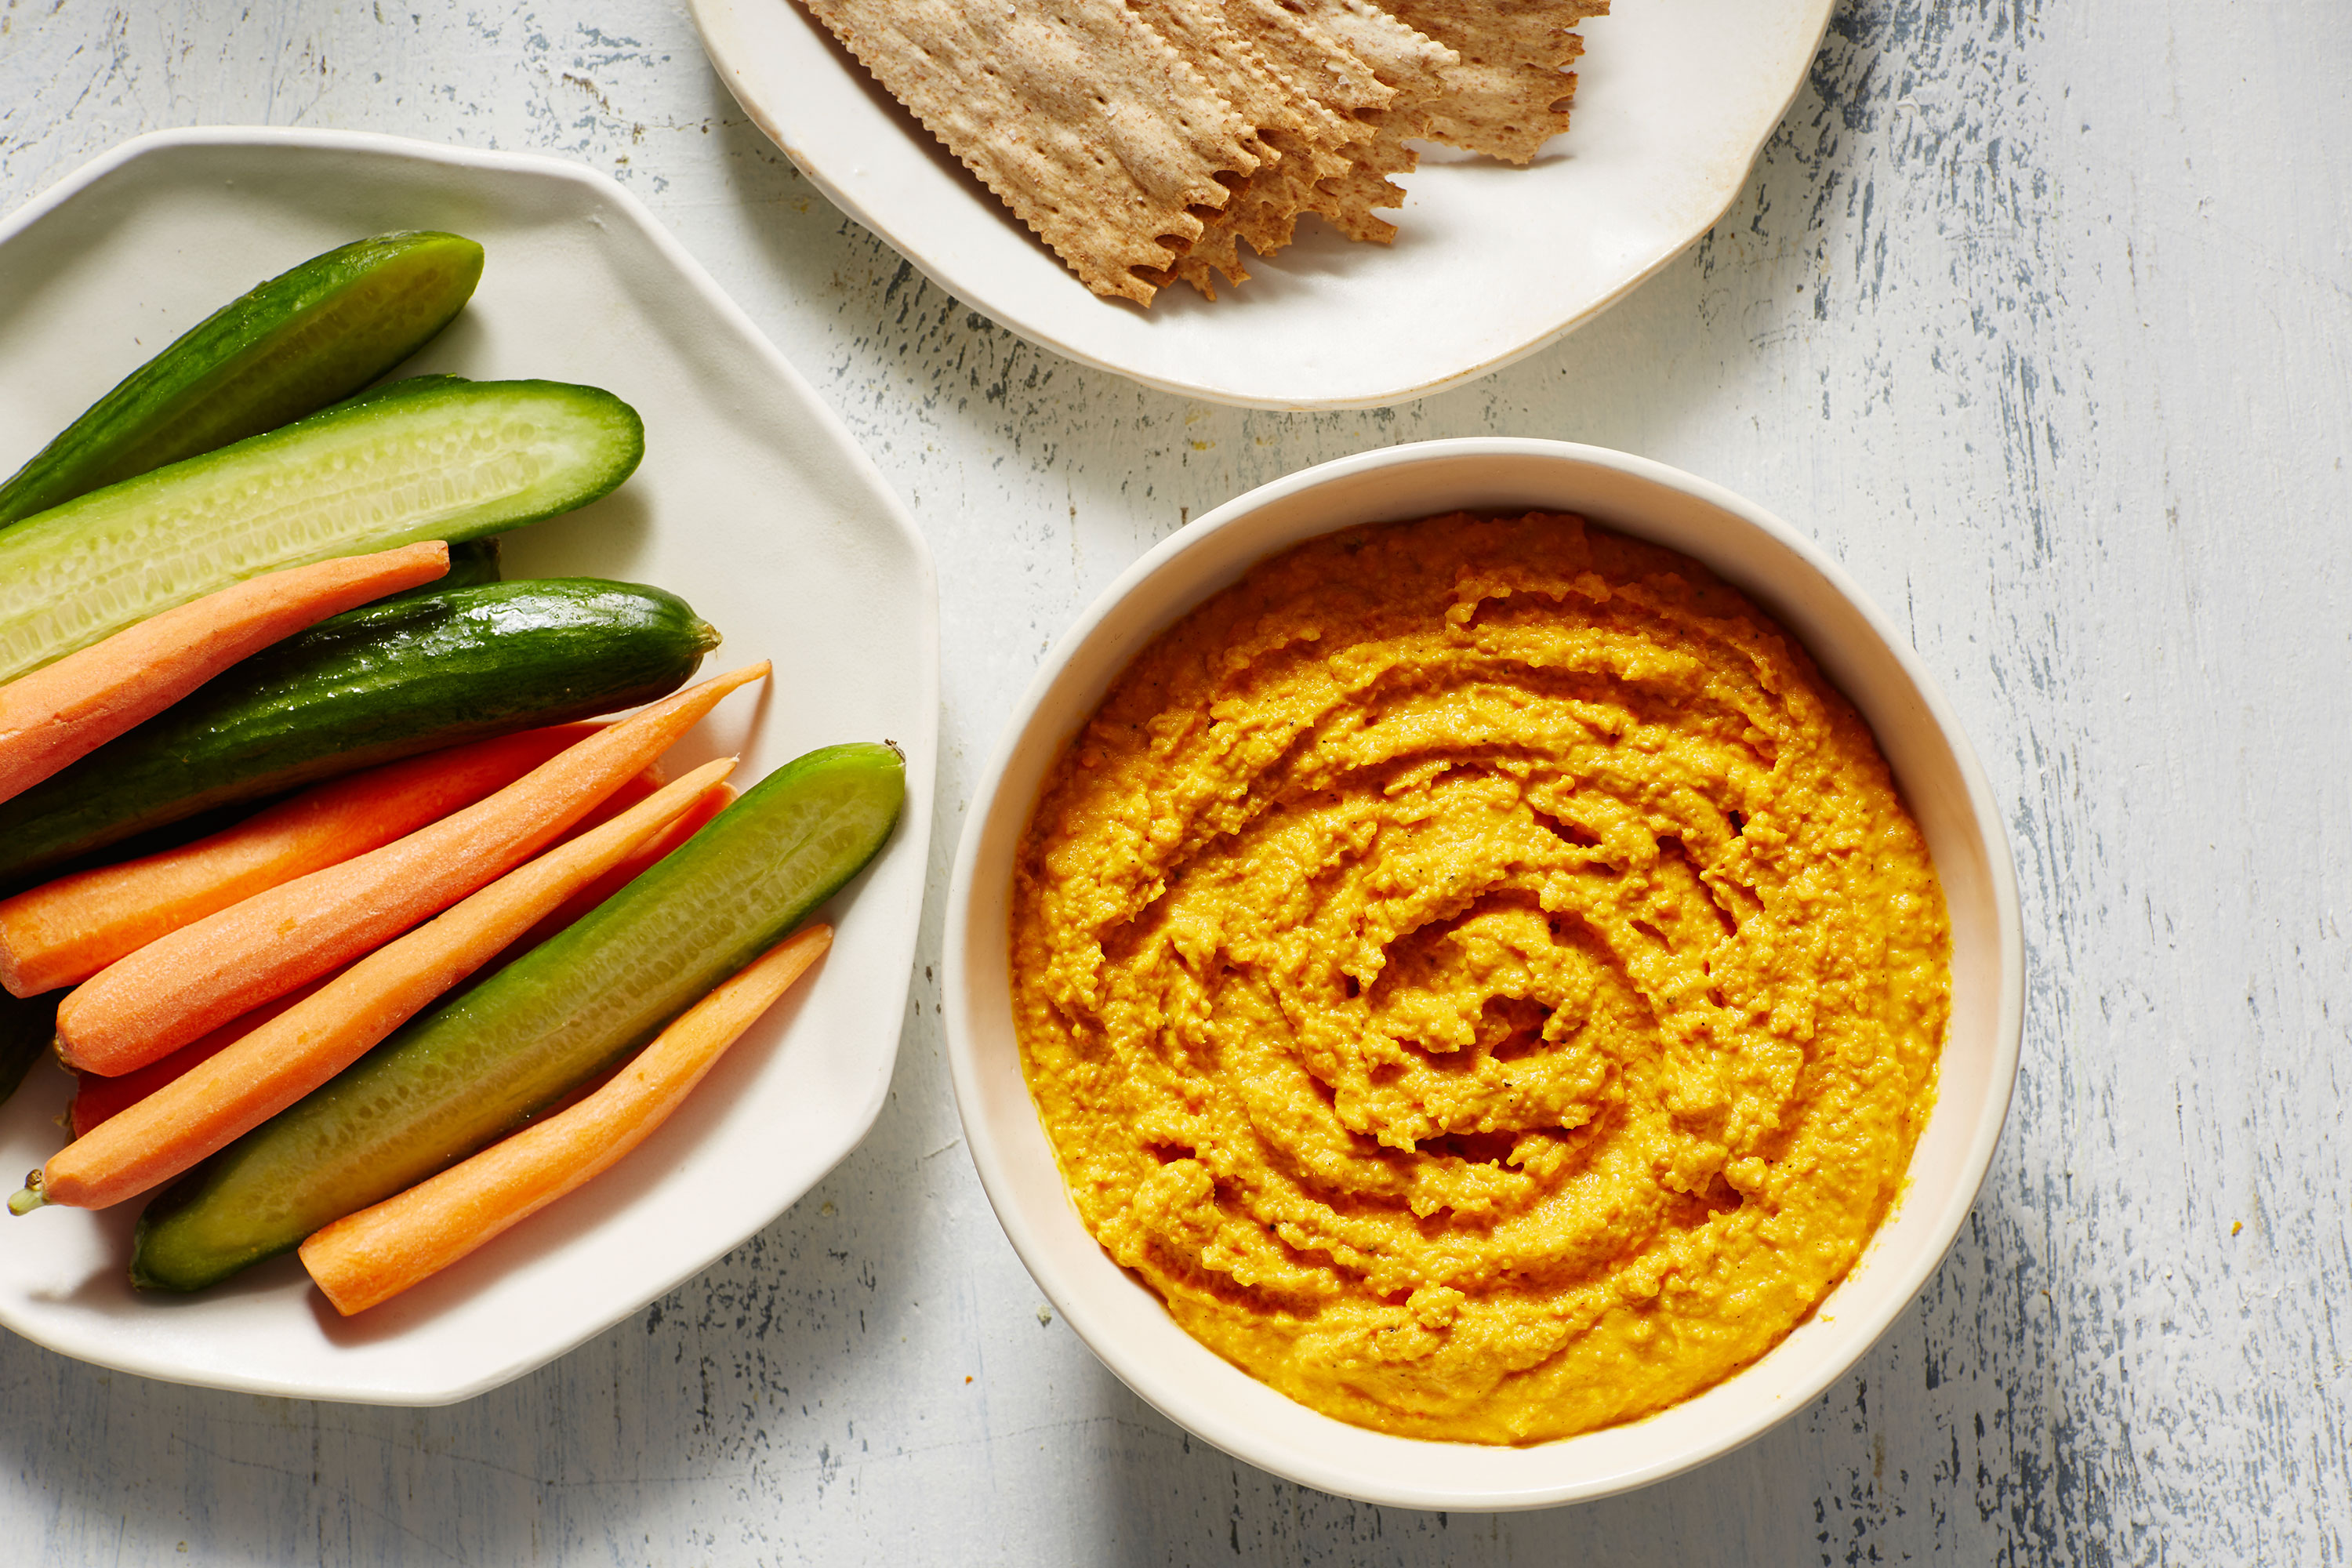 Roasted Carrot and Chickpea Hummus